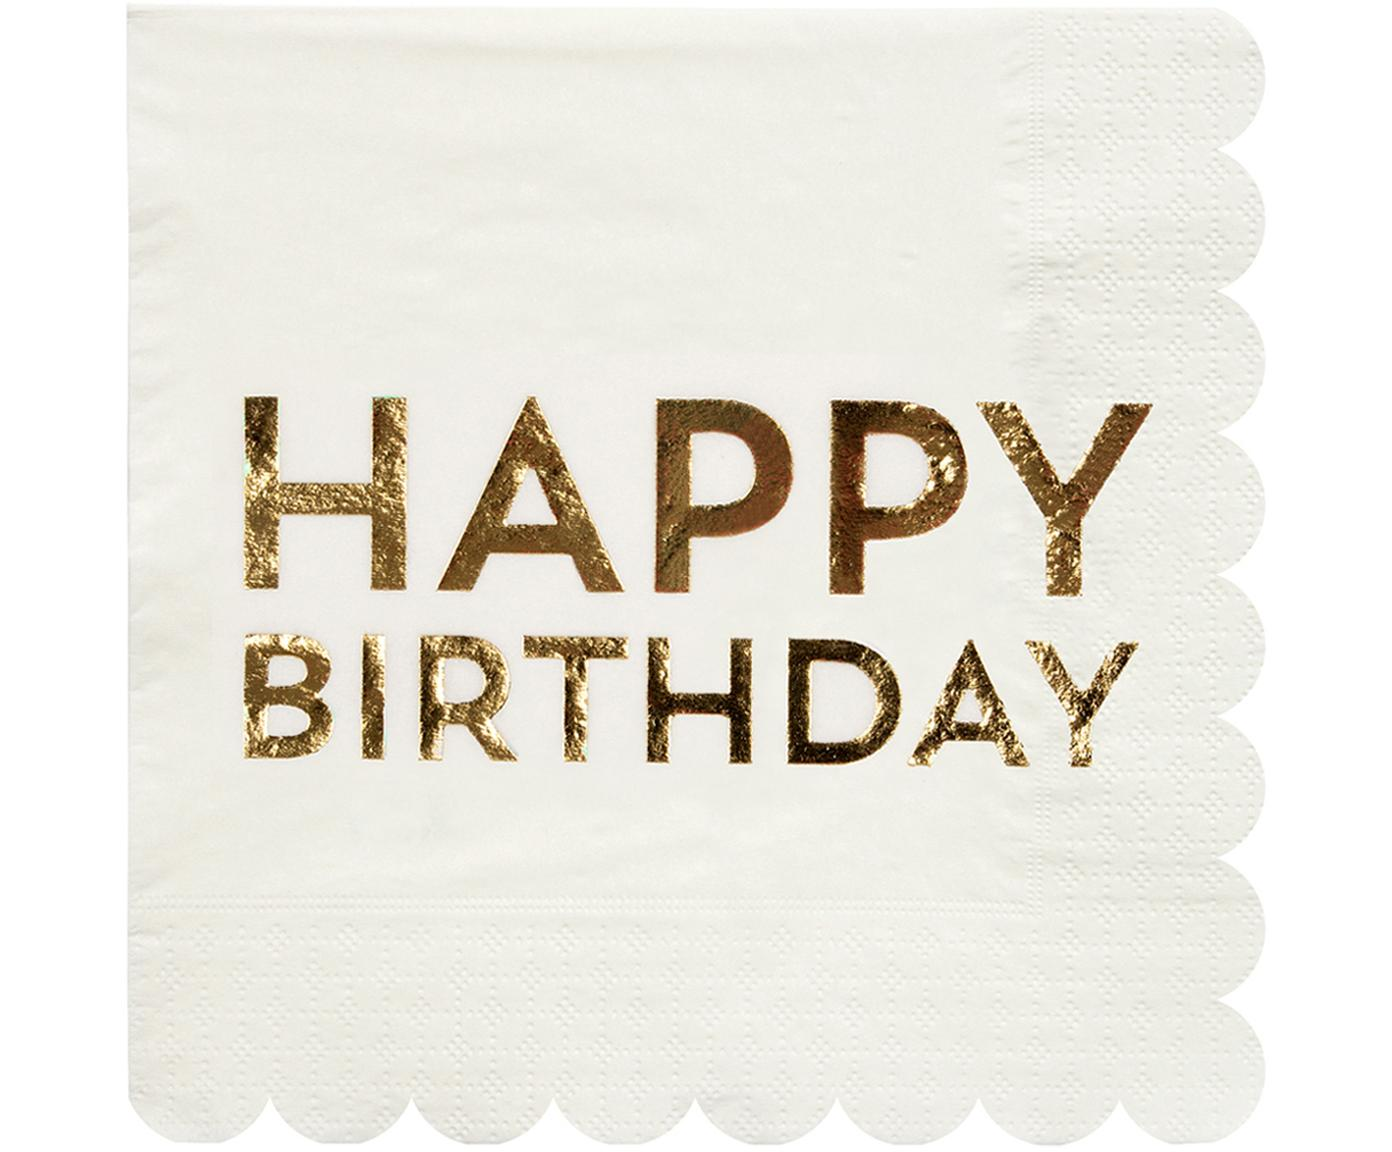 Servilletas de papel Birthday, 16 uds., Papel, Blanco, dorado, An 33 x L 33 cm